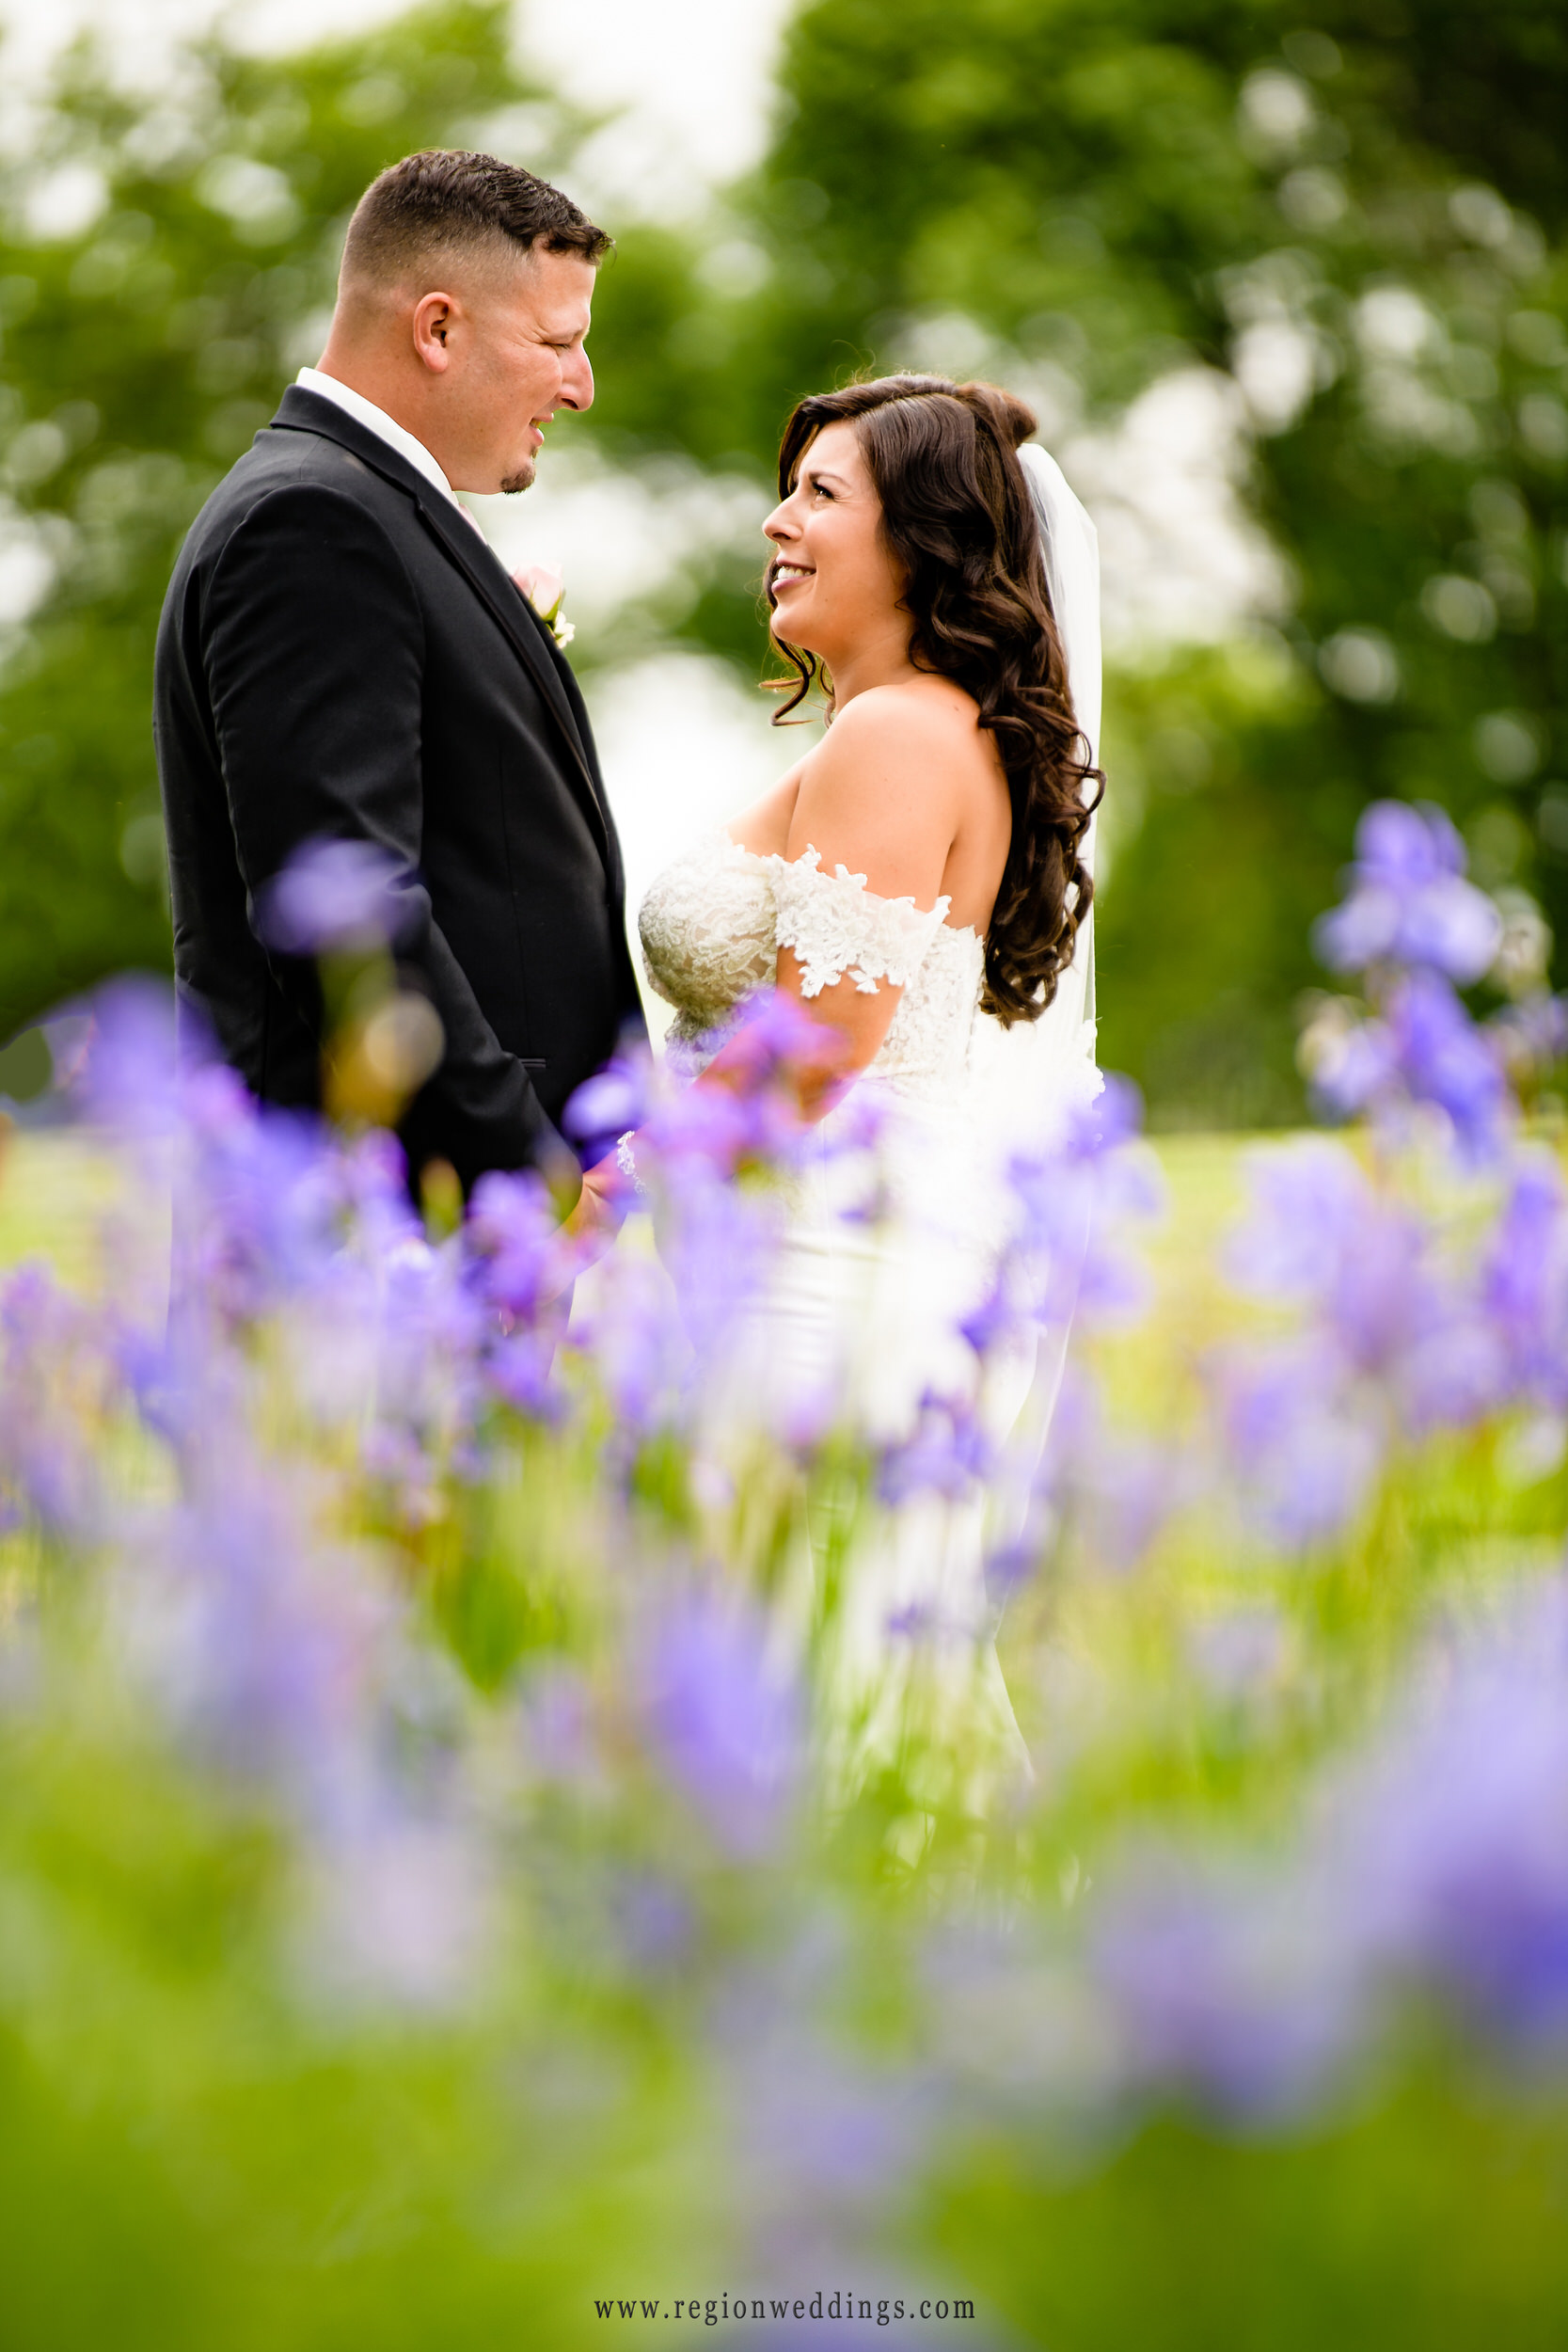 Loving eyes of the bride and groom with purple flowers in the foreground.